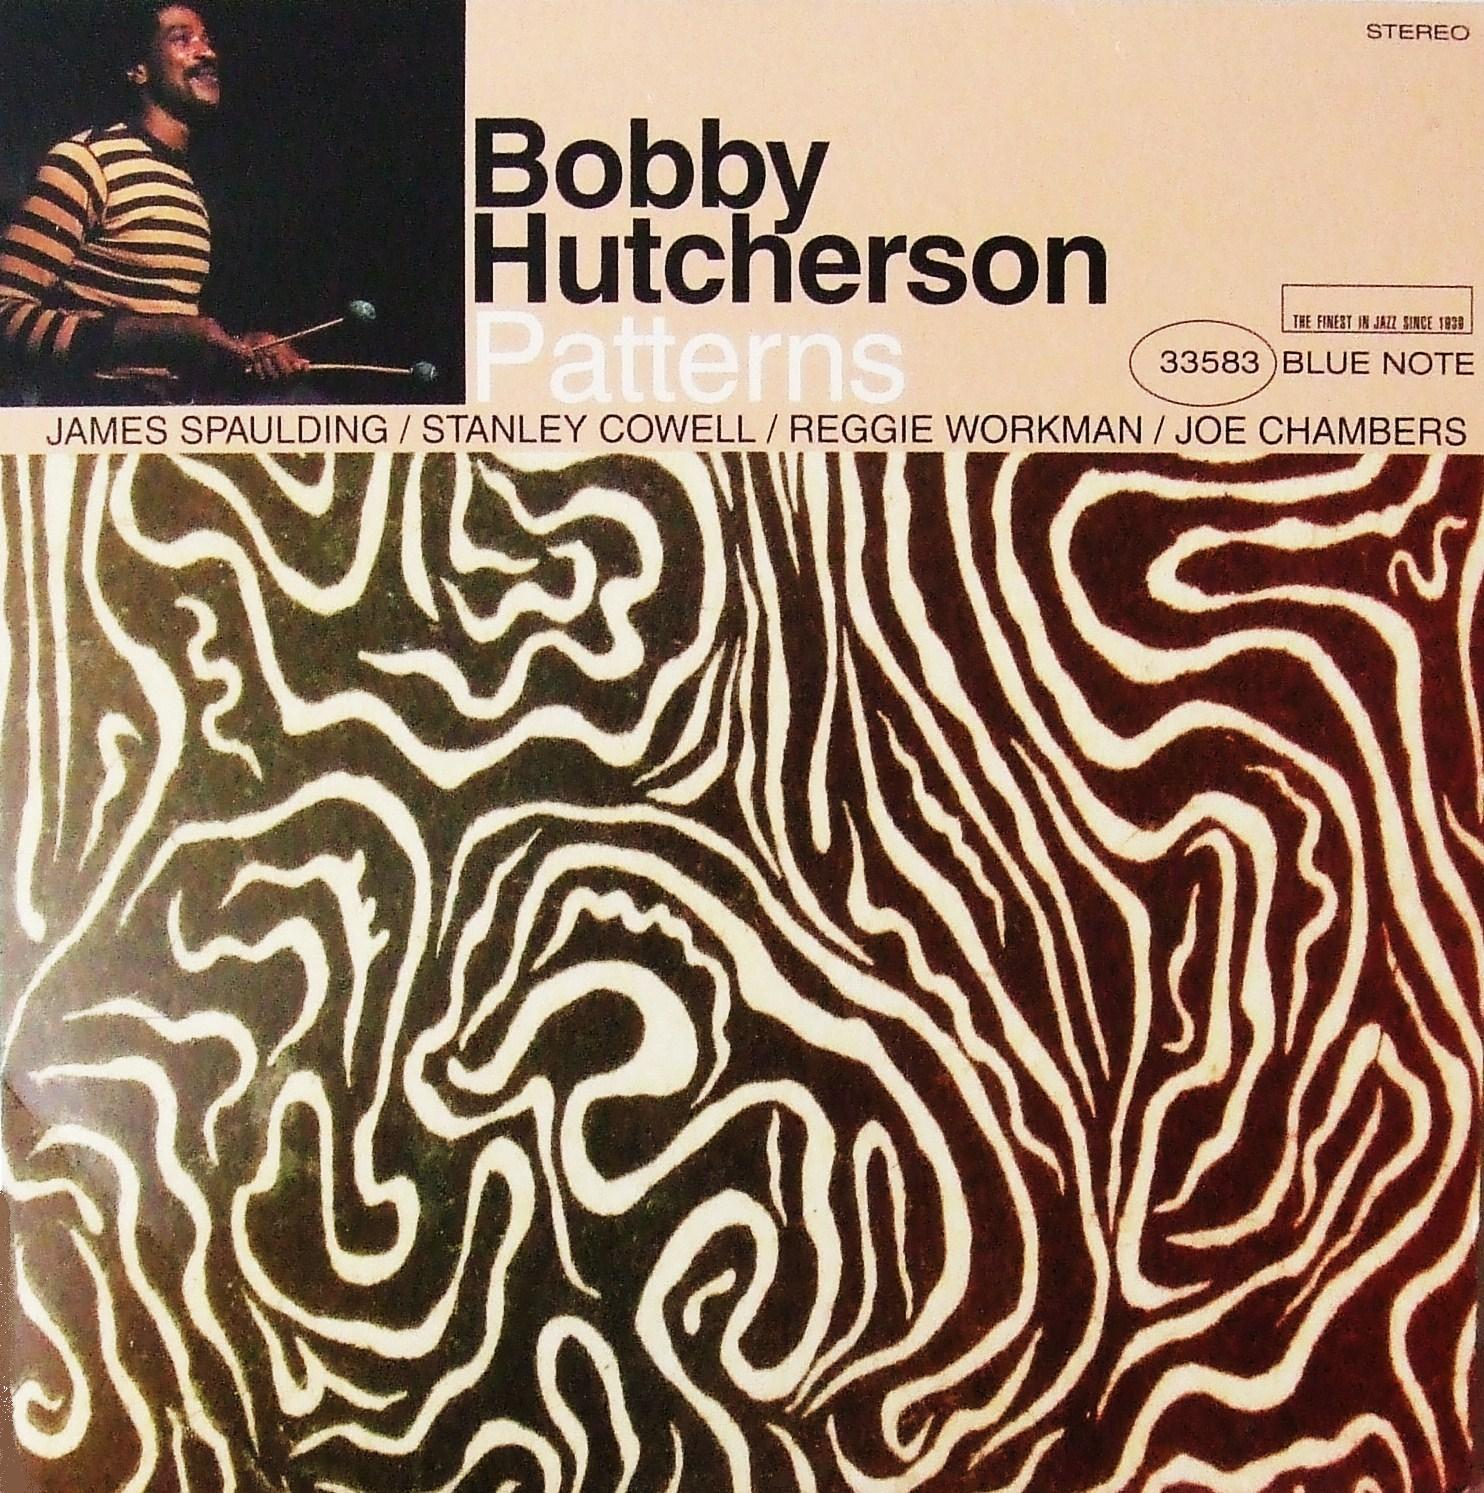 bobby hutcherson - patterns (sleeve art)